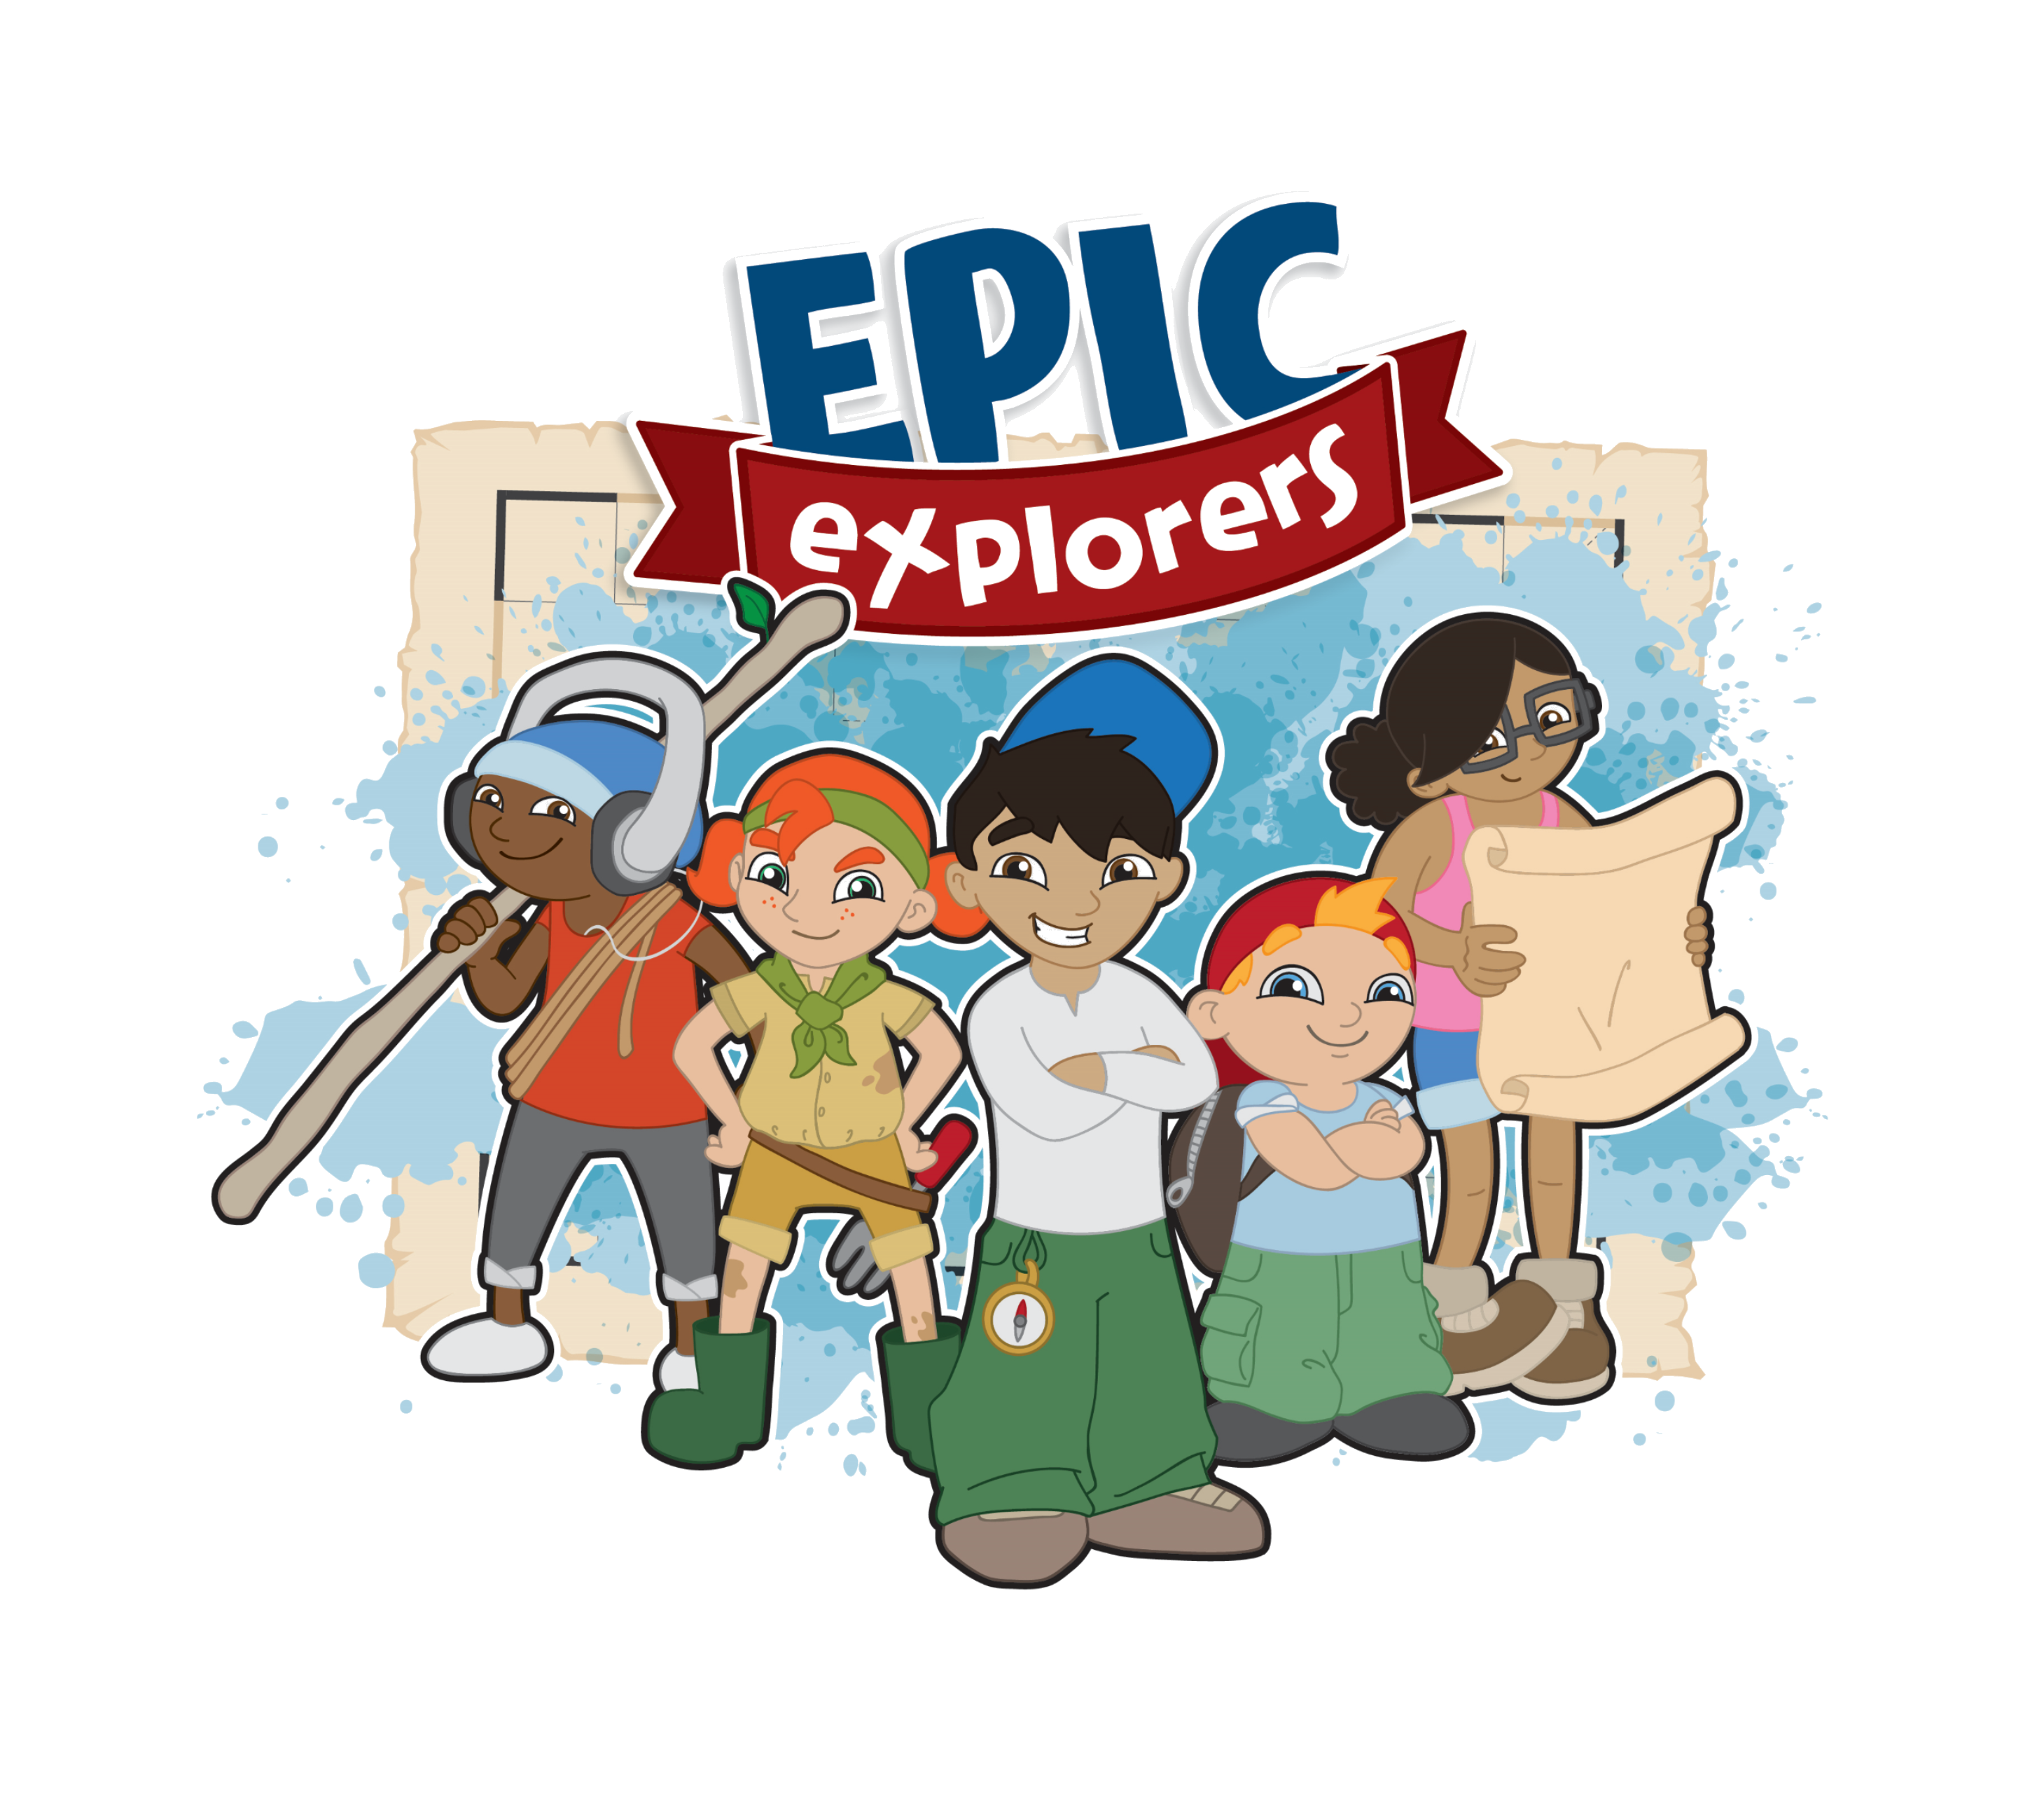 Conference clipart village meeting. Cornerstone epic explorers first